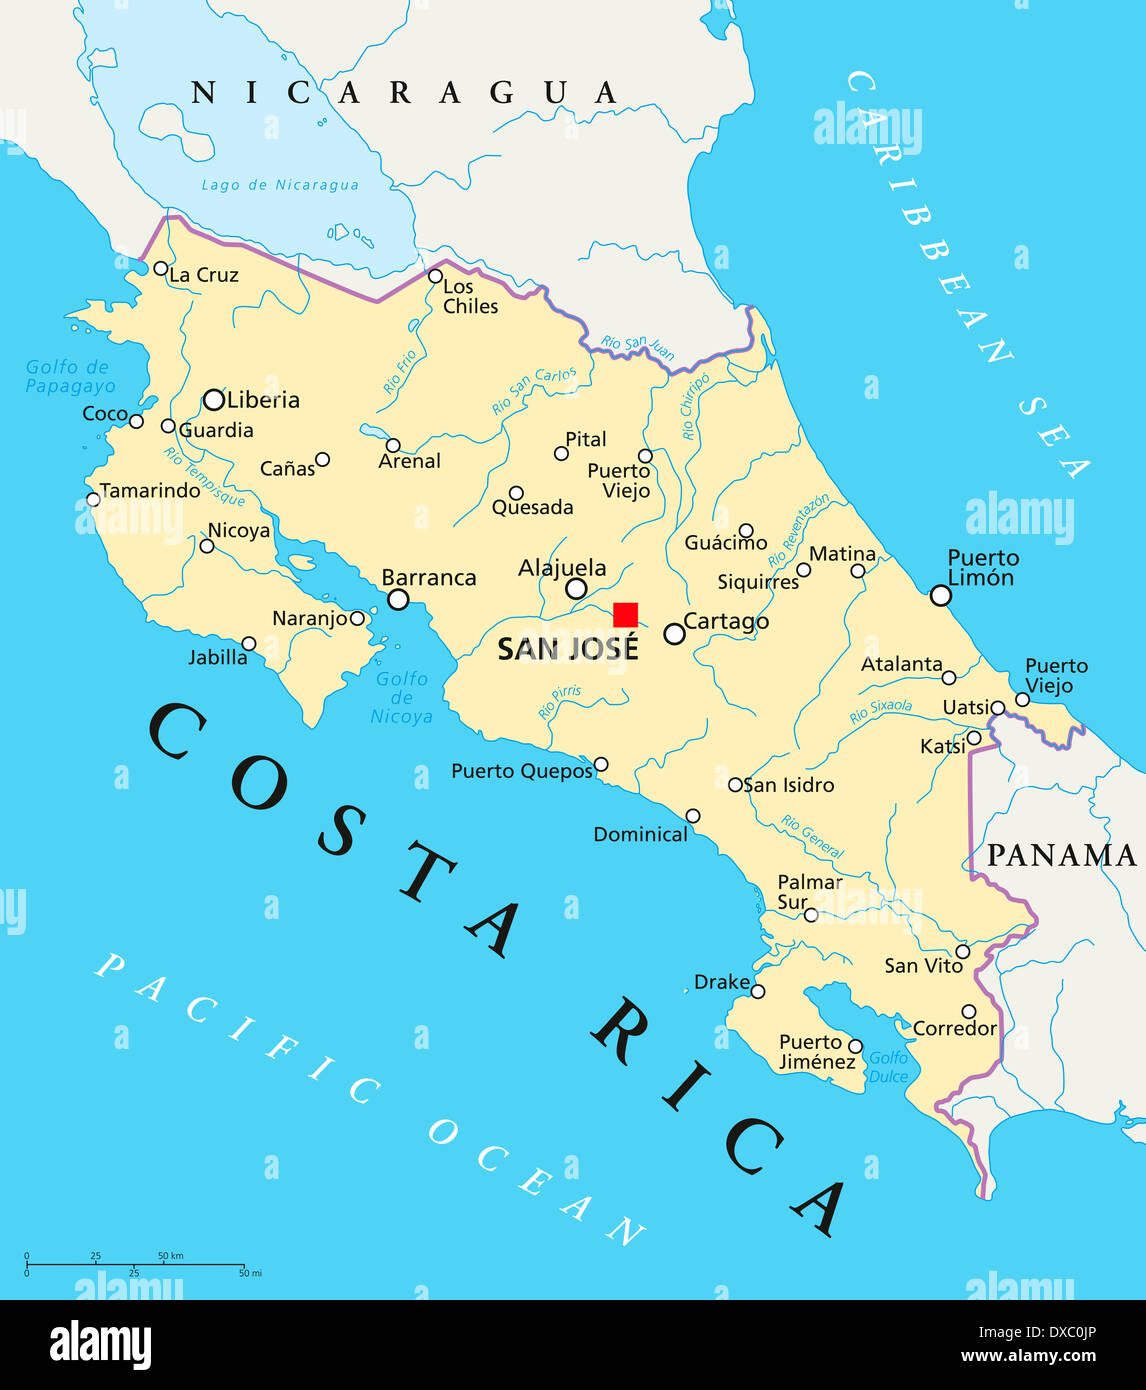 Map Of Costa Rica Stock Photos & Map Of Costa Rica Stock Images - Alamy